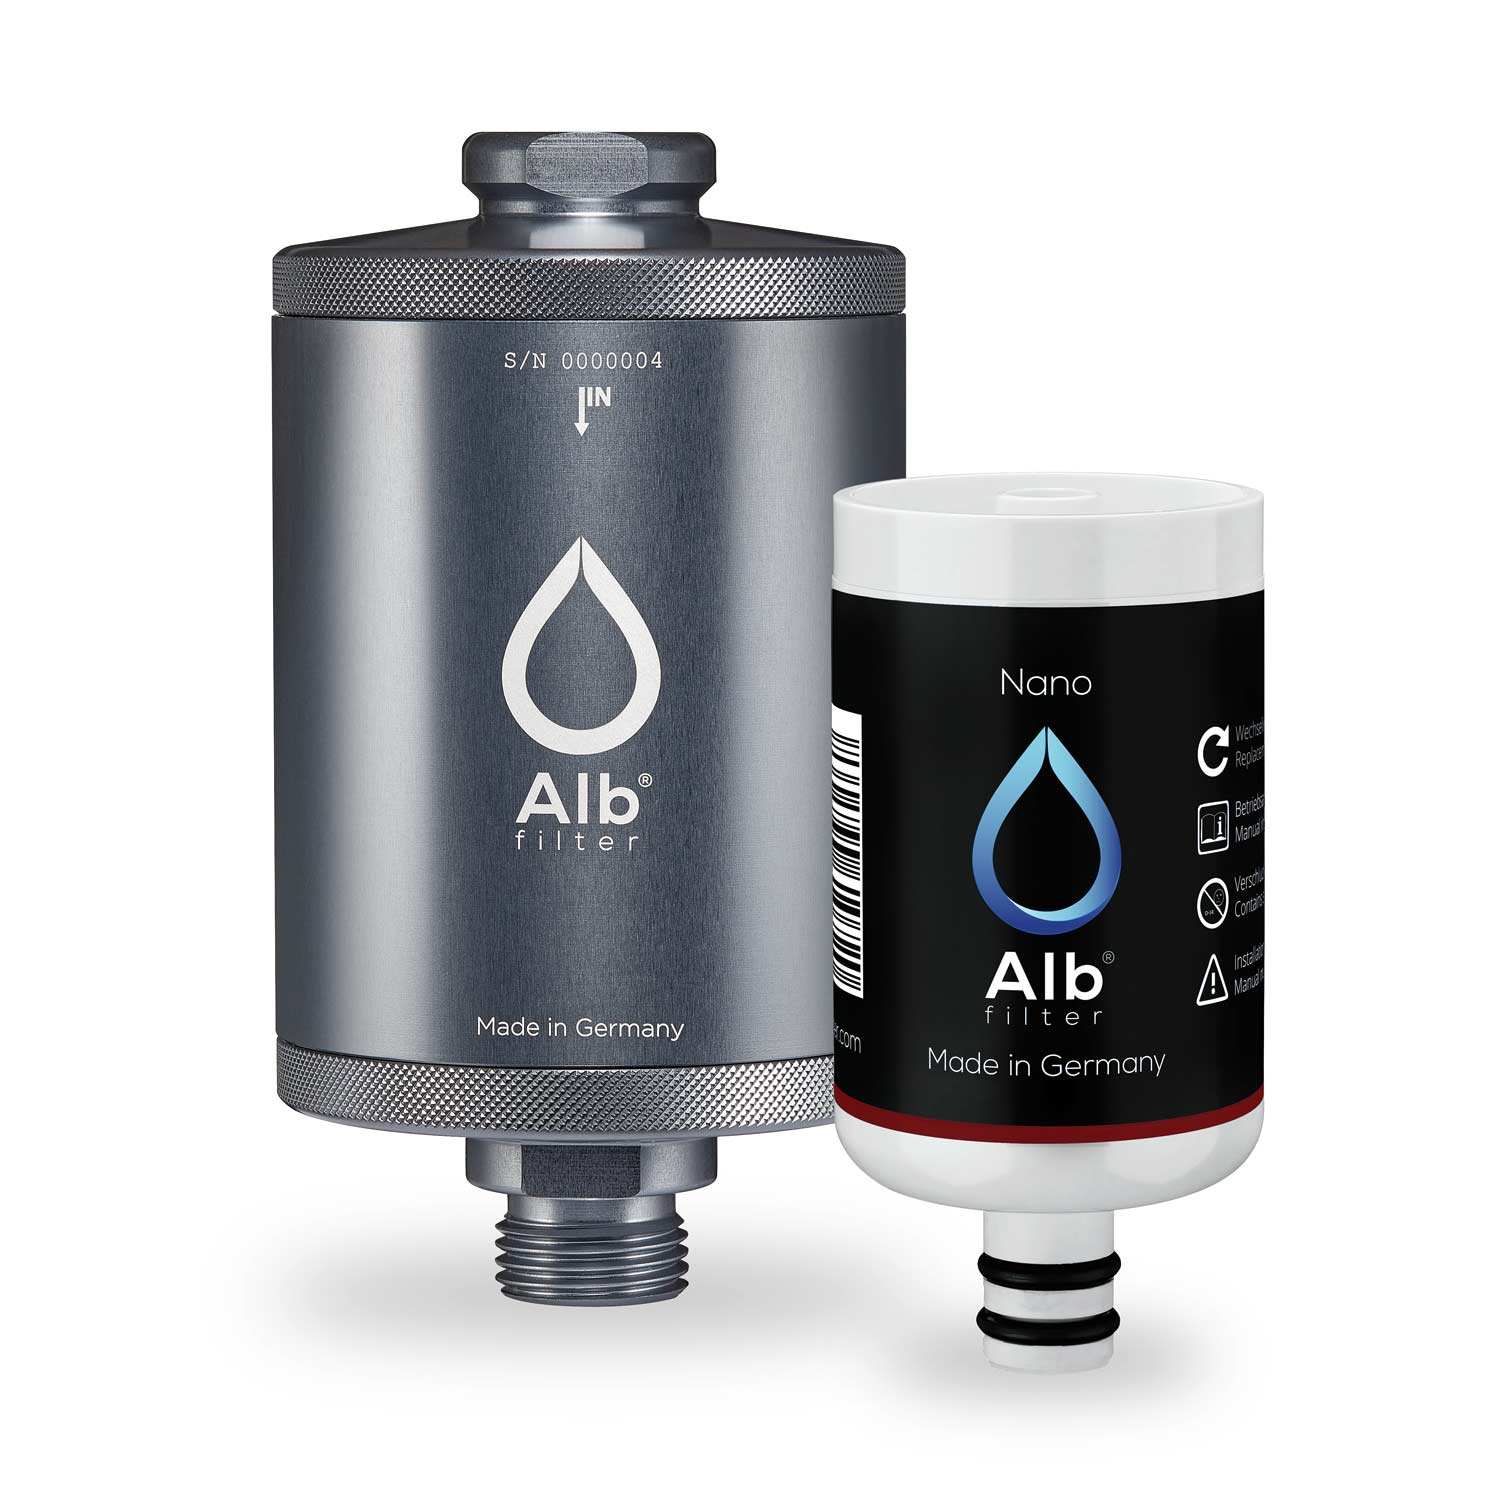 Alb Legionella filter for undertable. Robust filter housing in titanium with nano filter cartridge